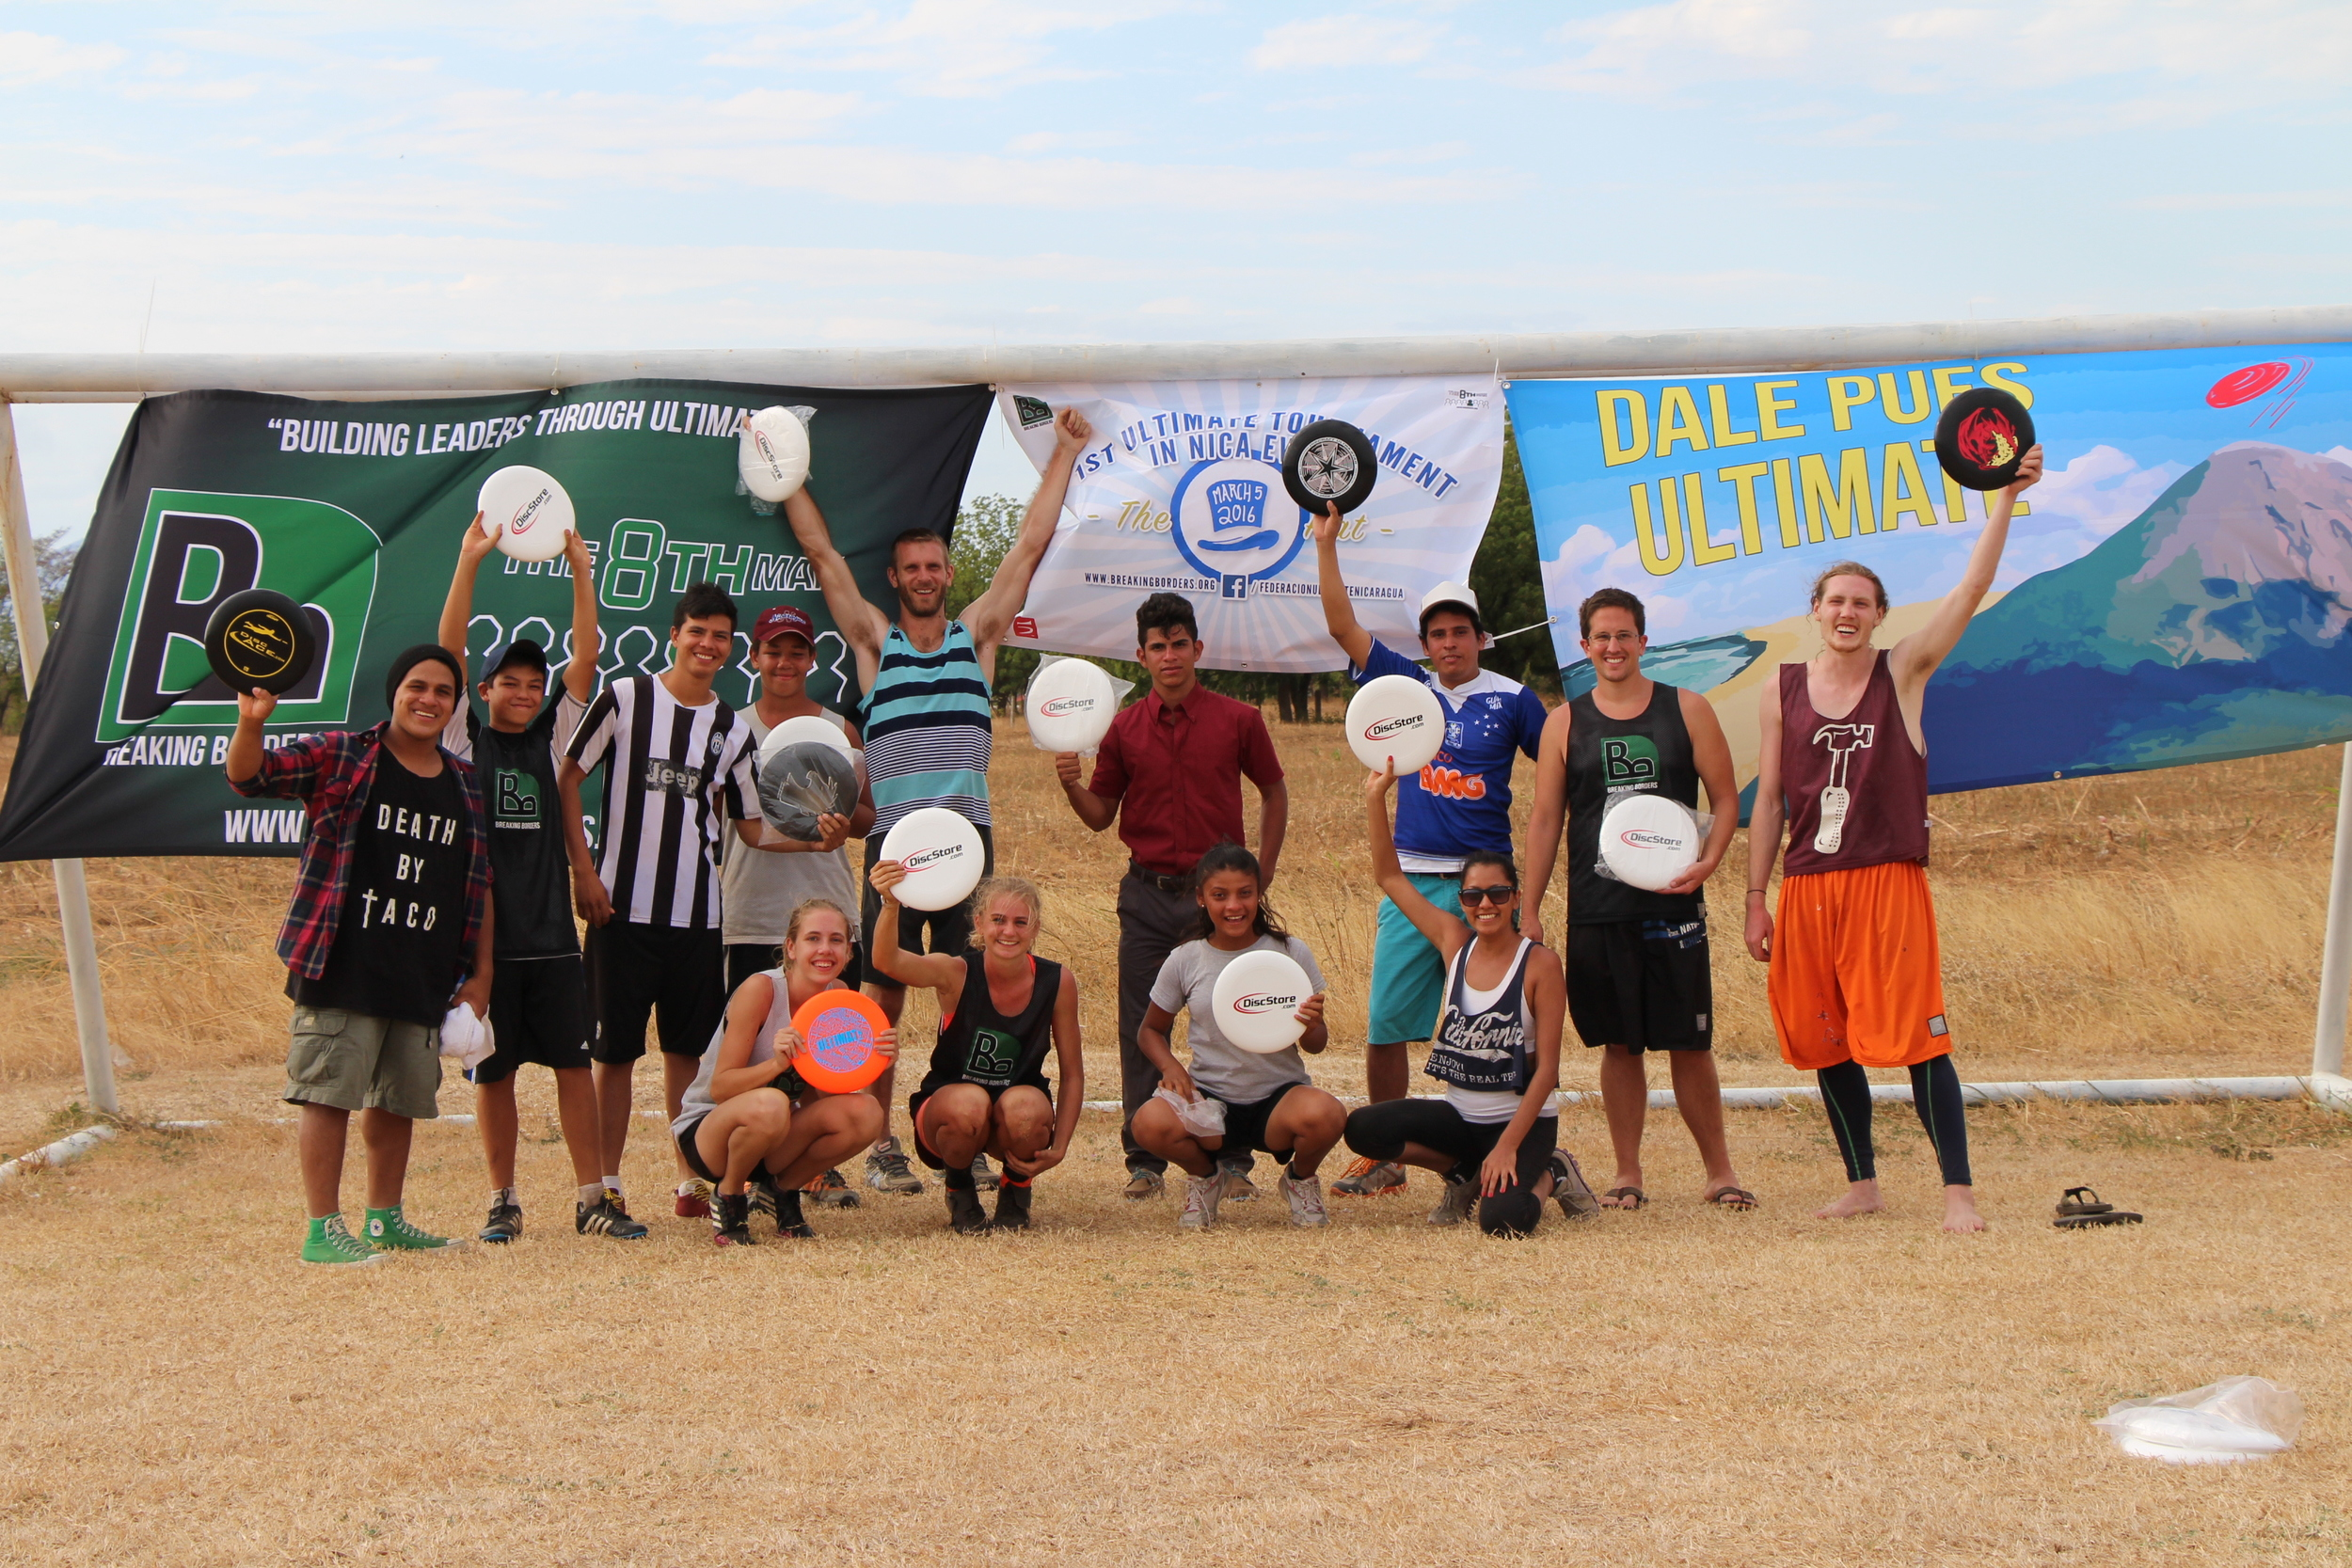 Team Momotombo- Winners of the first ever Ultimate tourney in Nicaragua!